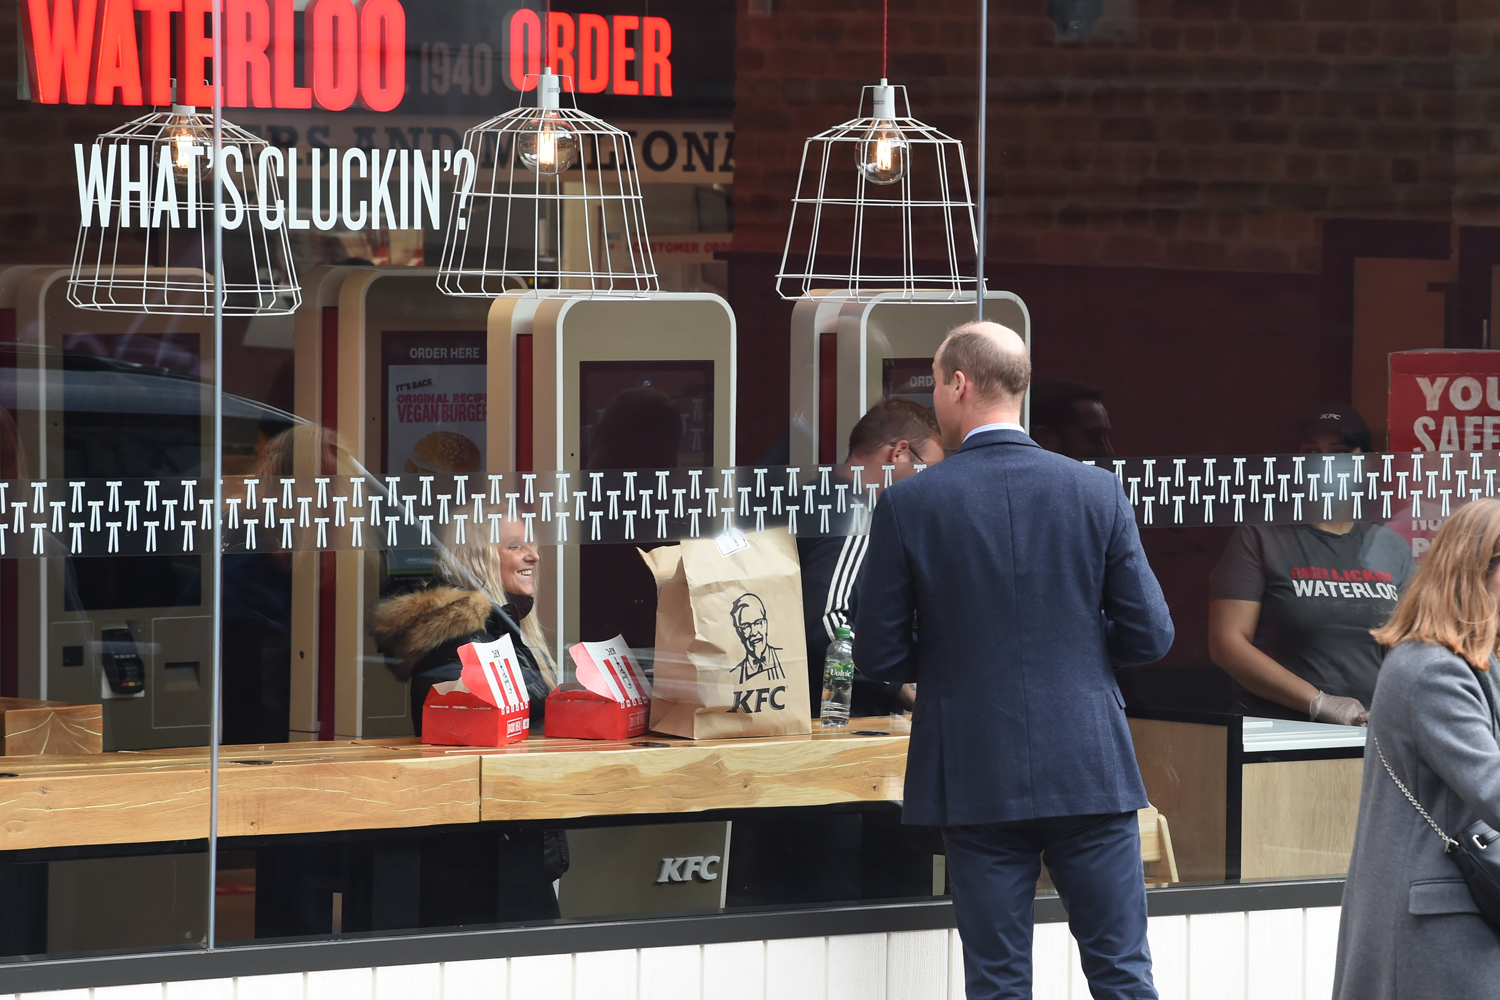 Prince William, Duke of Cambridge speaks to a member of the public through the window of a KFC